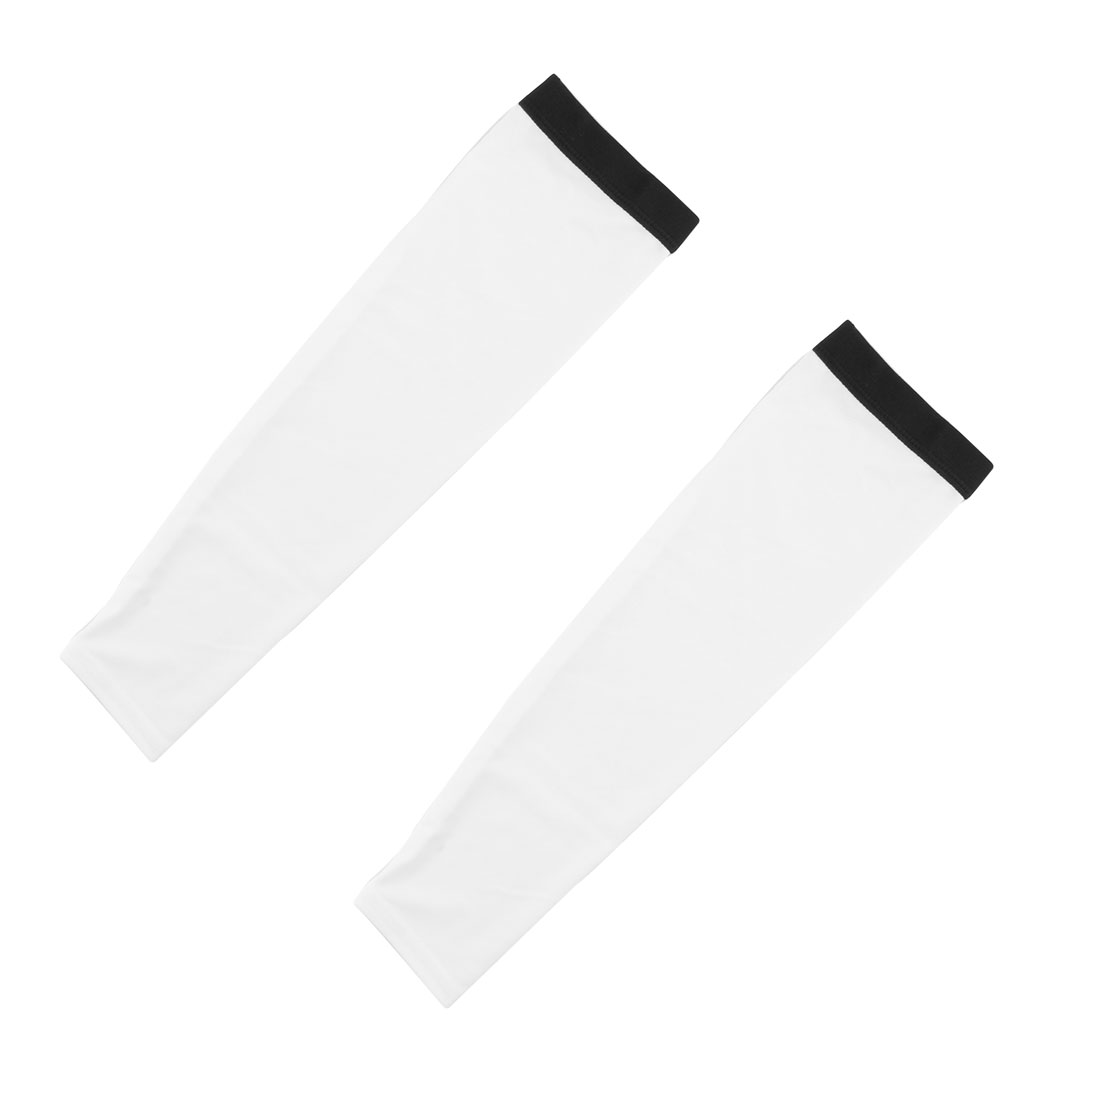 Outdoor Cycling Polyester Anti-UV Stretchy Arm Sleeves Cover Protection Decor White Size L Pair